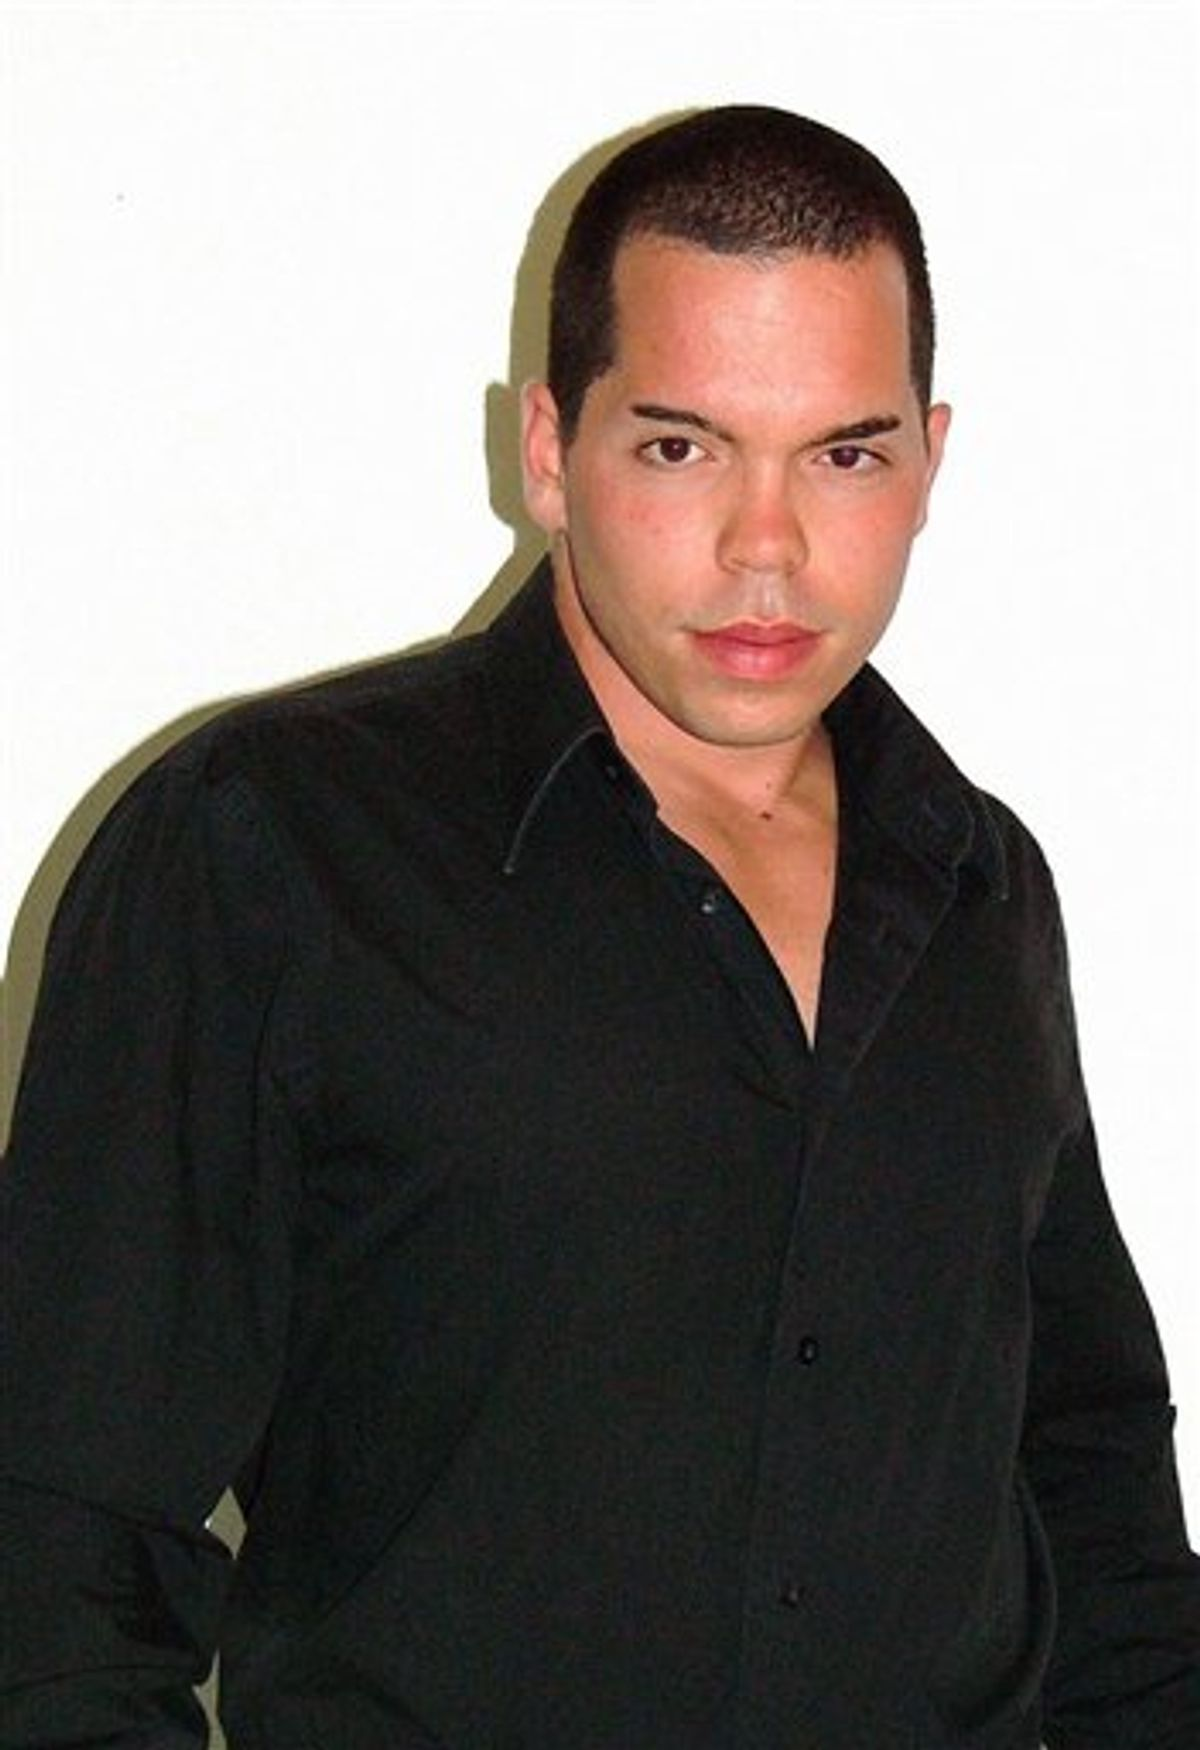 """This undated photo provided by  OC Modeling of Chatsworth, Calif. shows """"Markus"""" Nevada's first male prostitute. A brothel in an isolated Nevada town has hired the state's first male prostitute, a muscular college dropout who abandoned a brief stint as a porn actor in Los Angeles to become the only legal gigolo in the United States. (AP Photo/OC Modeling) NO SALES  (AP)"""